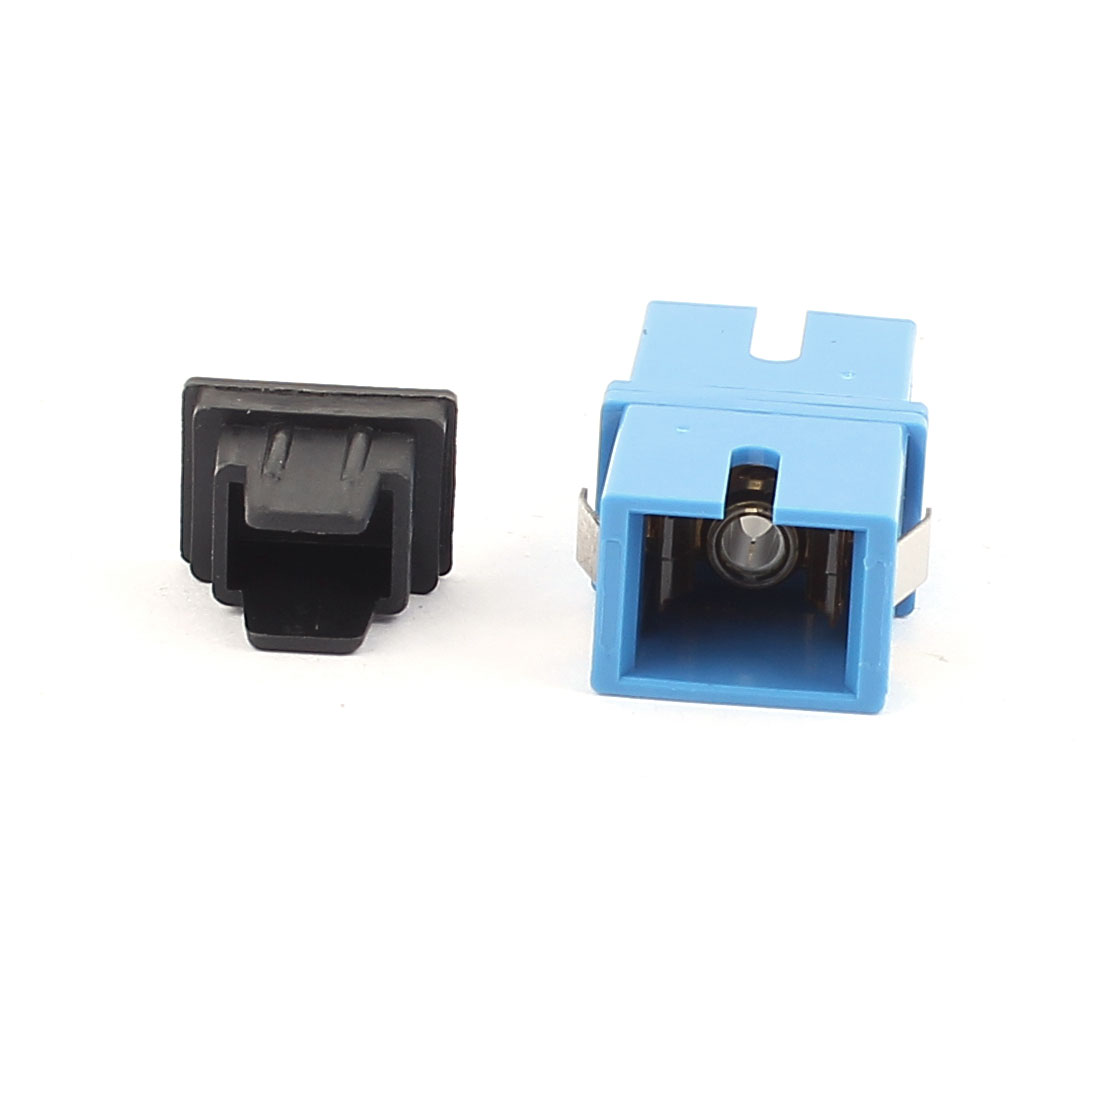 Multi-mode SC-SC UPC Simplex Fibre Coupler Flange Adapter Optical Fiber Connector